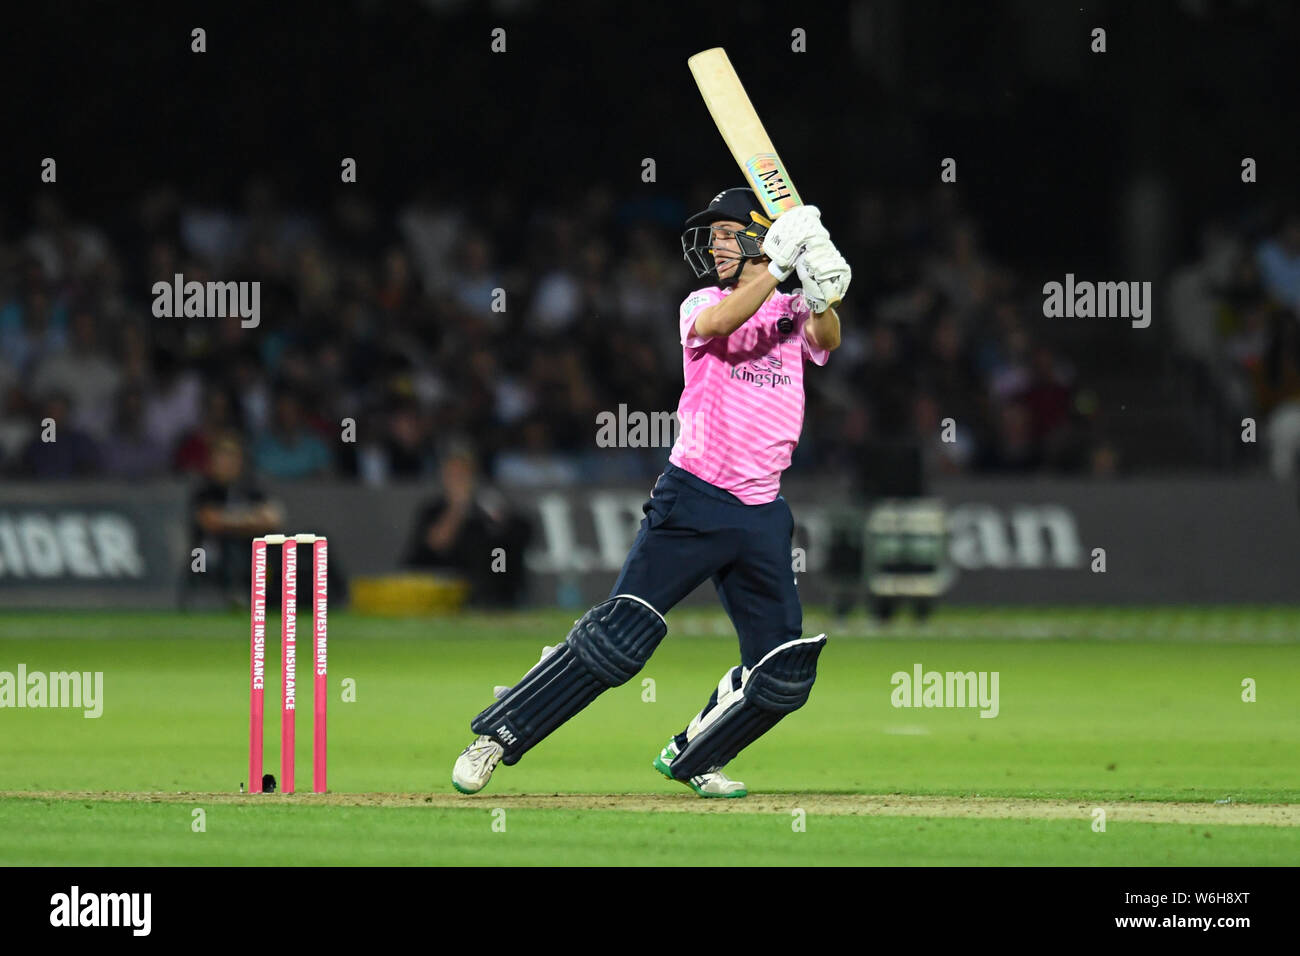 London, UK. 1st Aug, 2019.  during T20 Vitality Blast Fixture between Middesex vs Kent at The Lord Cricket Ground on Thursday, August 01, 2019 in LONDON ENGLAND. Credit: Taka G Wu/Alamy Live News Stock Photo